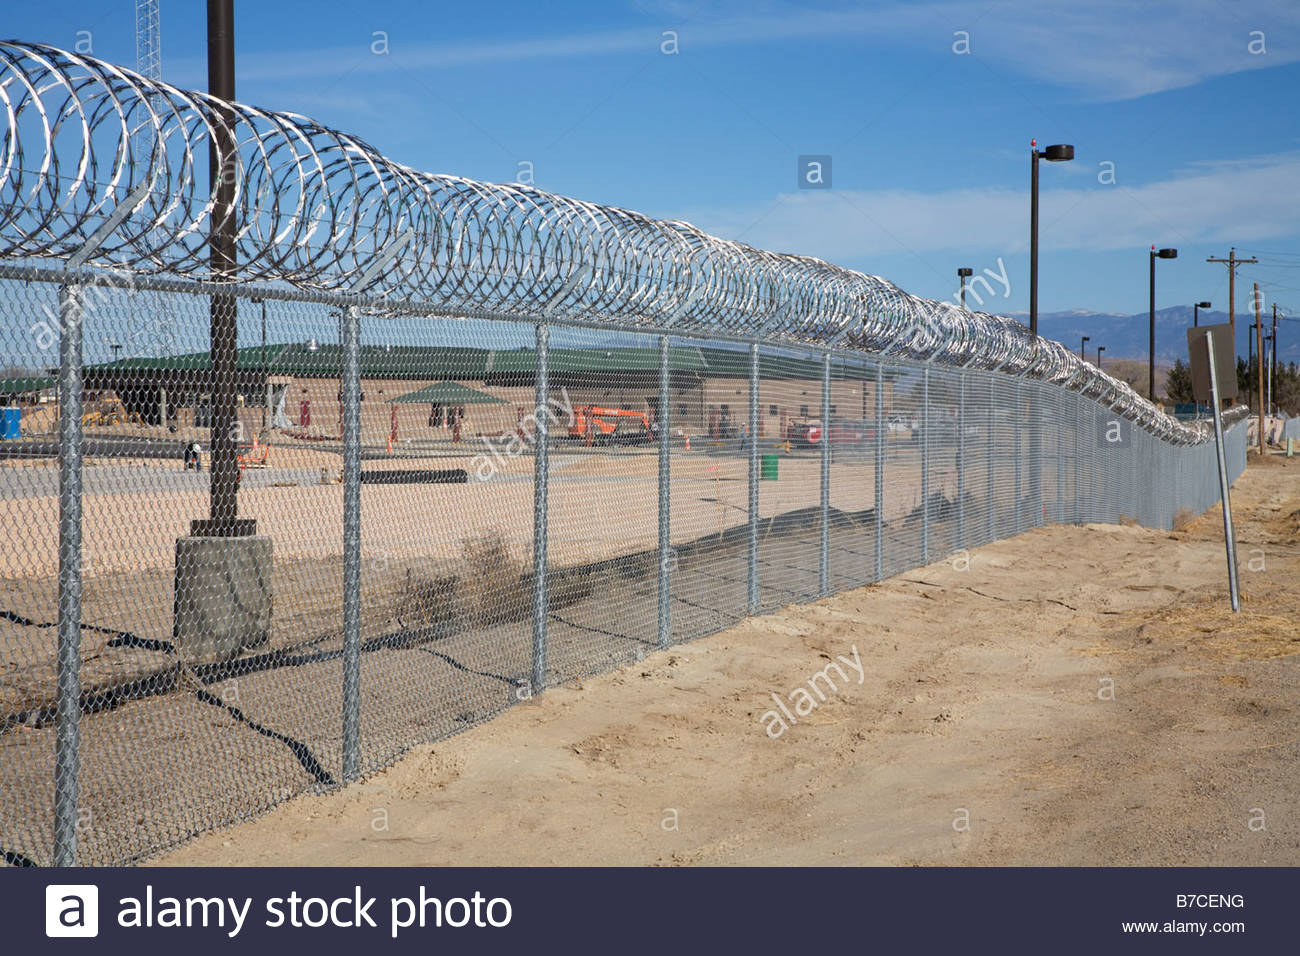 Razor wire concertina wire topping security fence Stock Photo ...